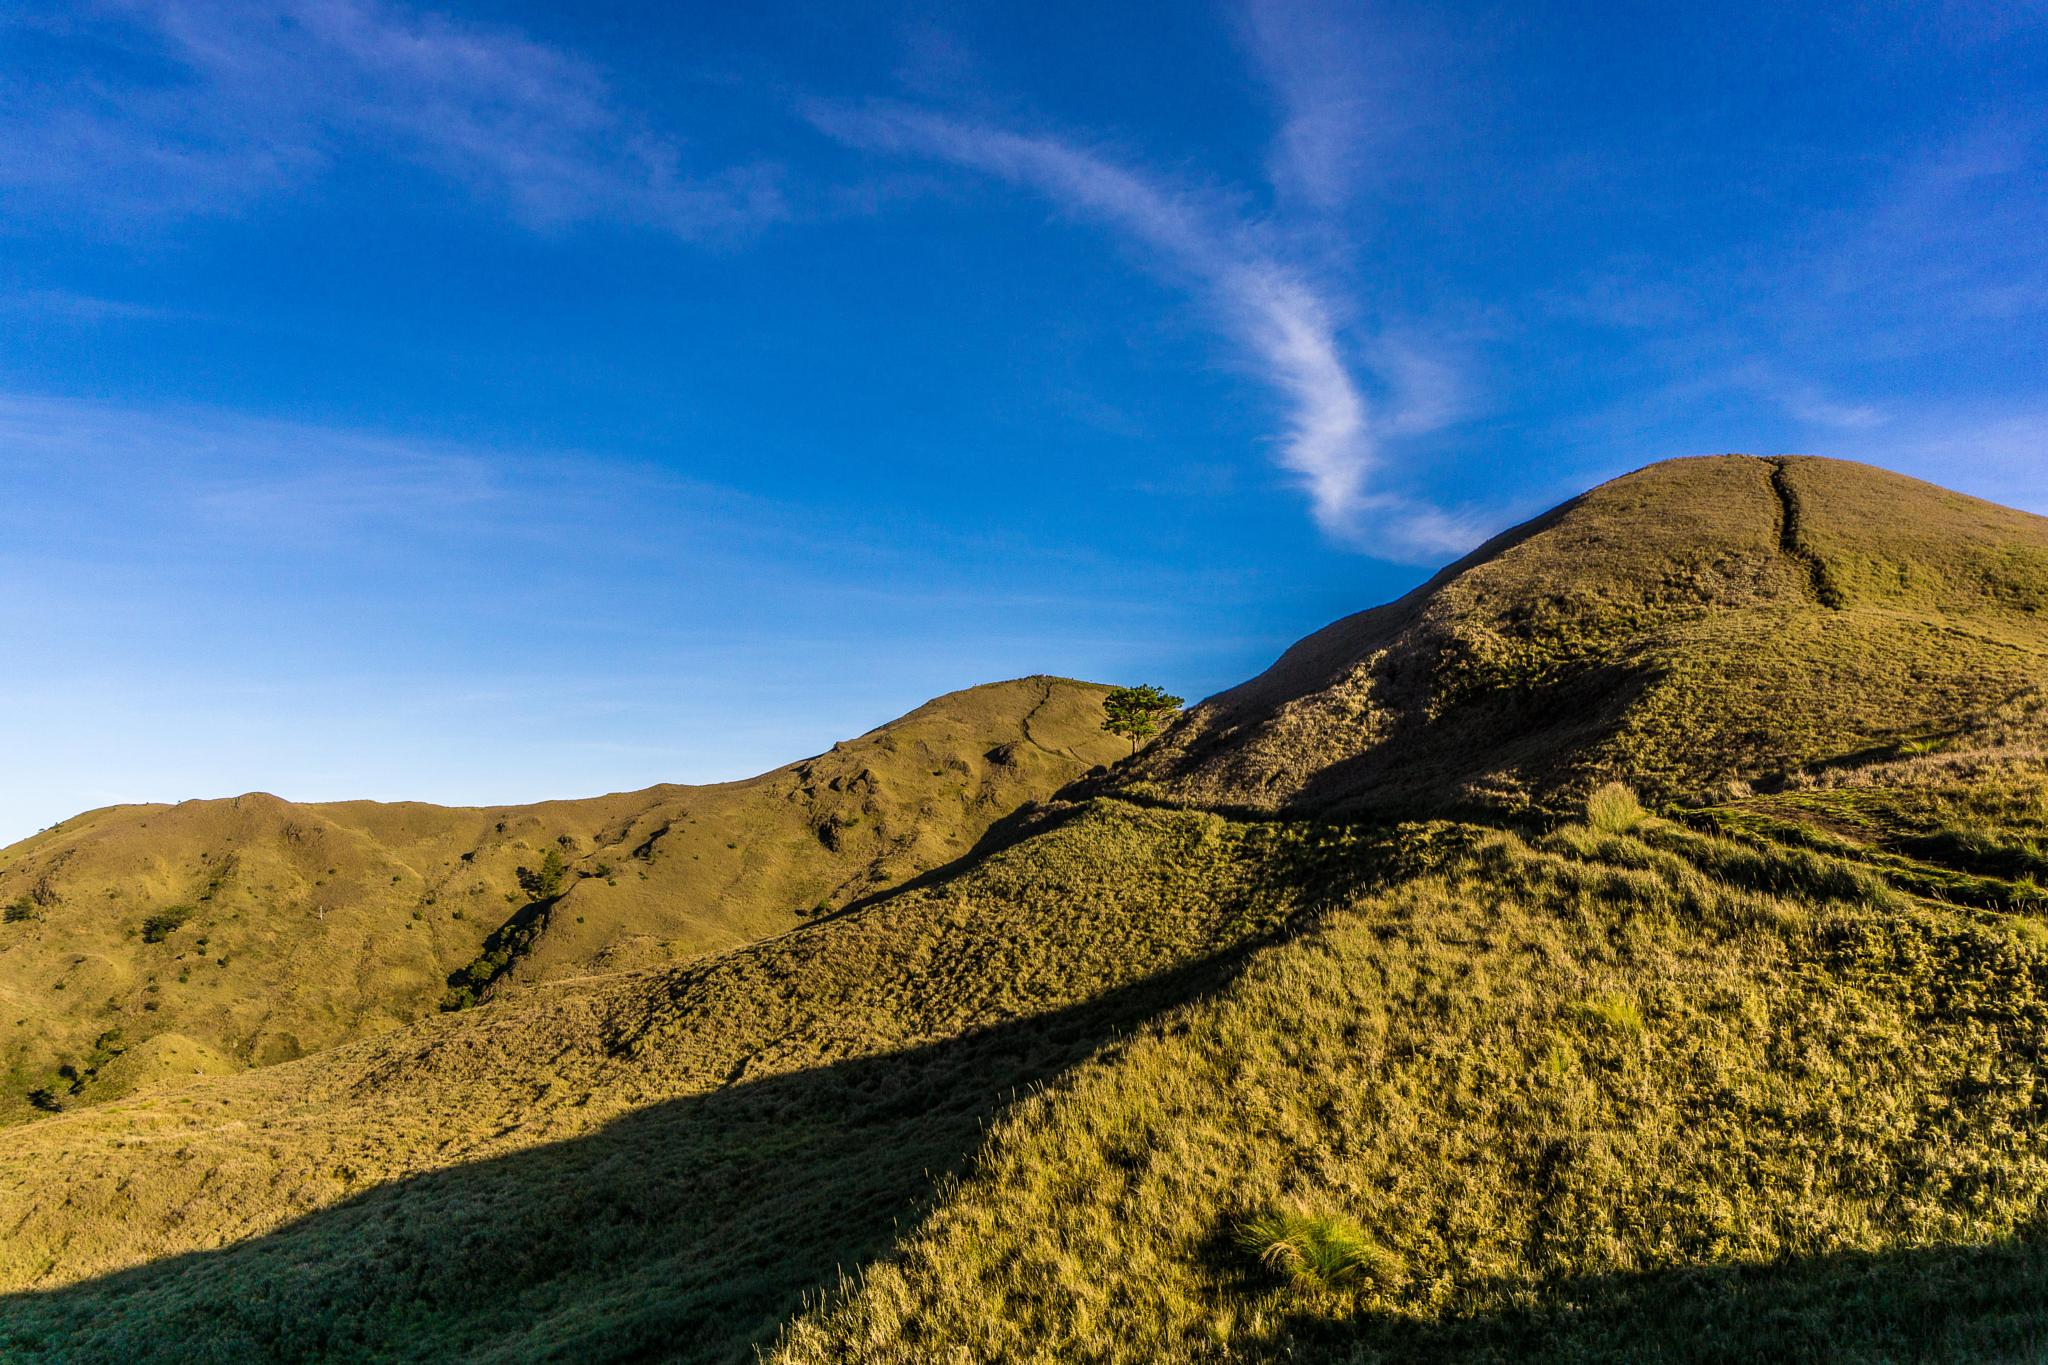 Mt.Pulag by francis